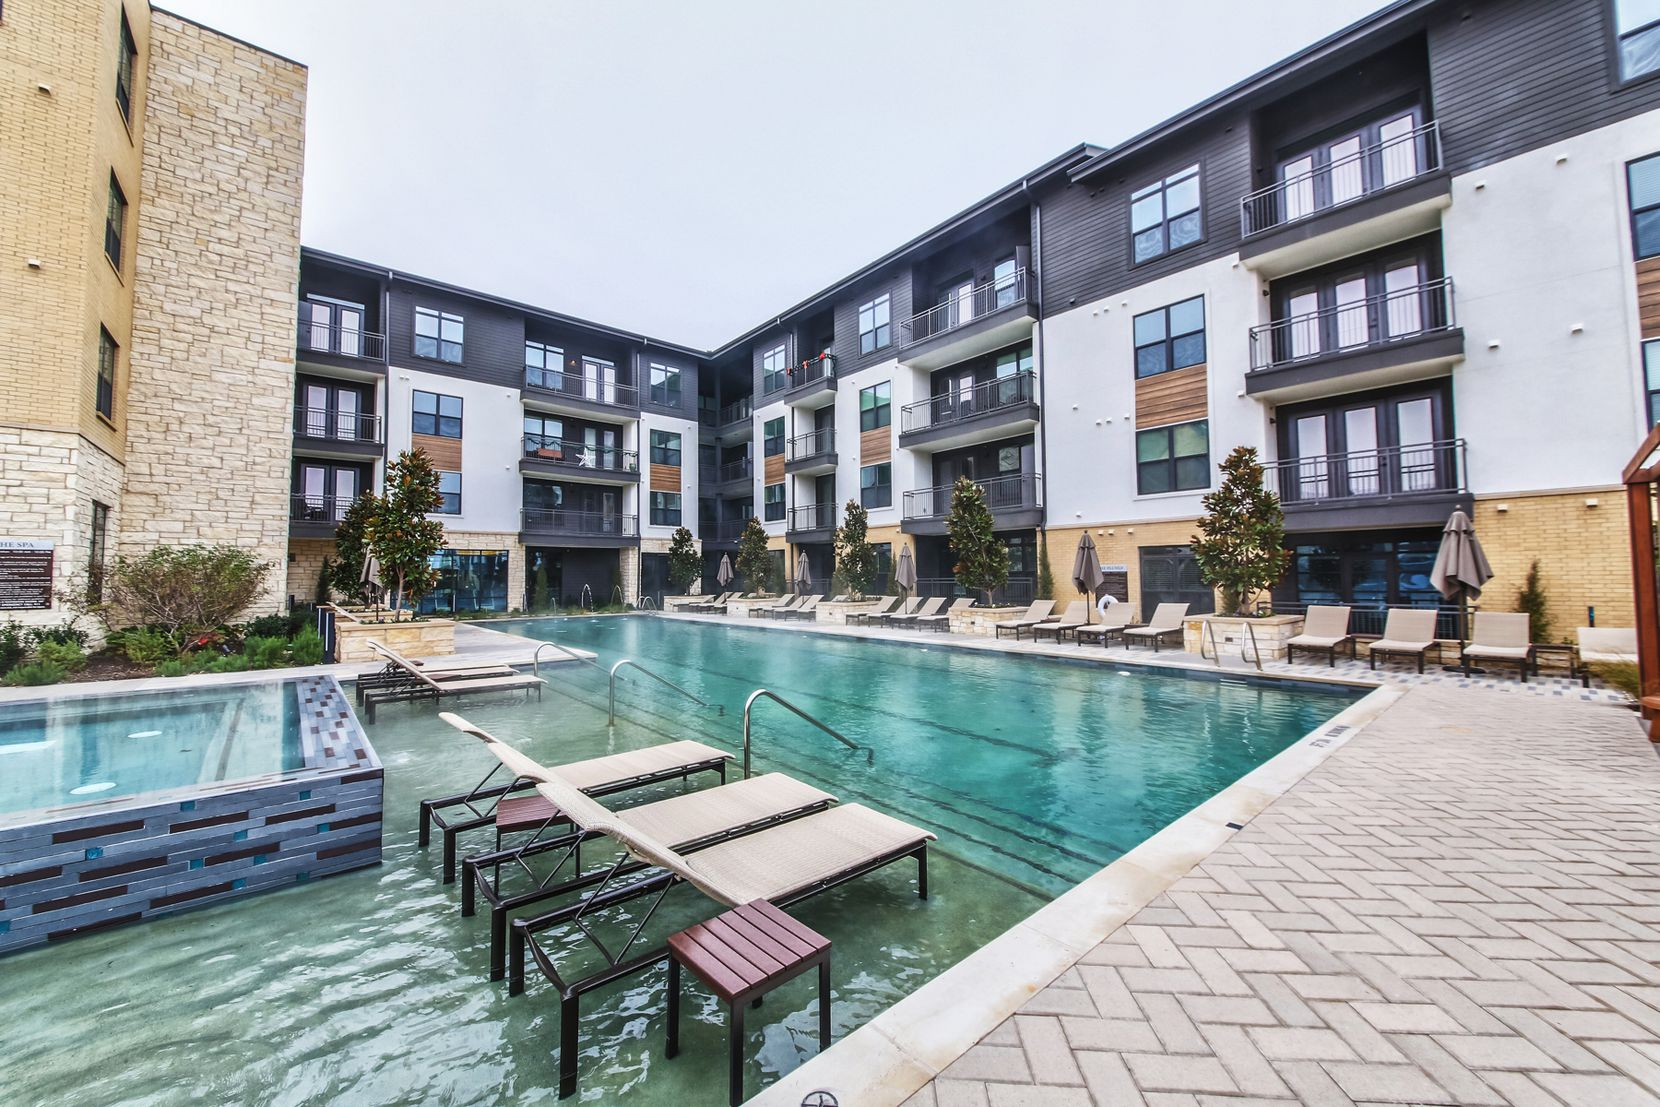 Comfort, community and convenience await you at Overture Fairview, a 55+ apartment community minutes from Allen, Texas.